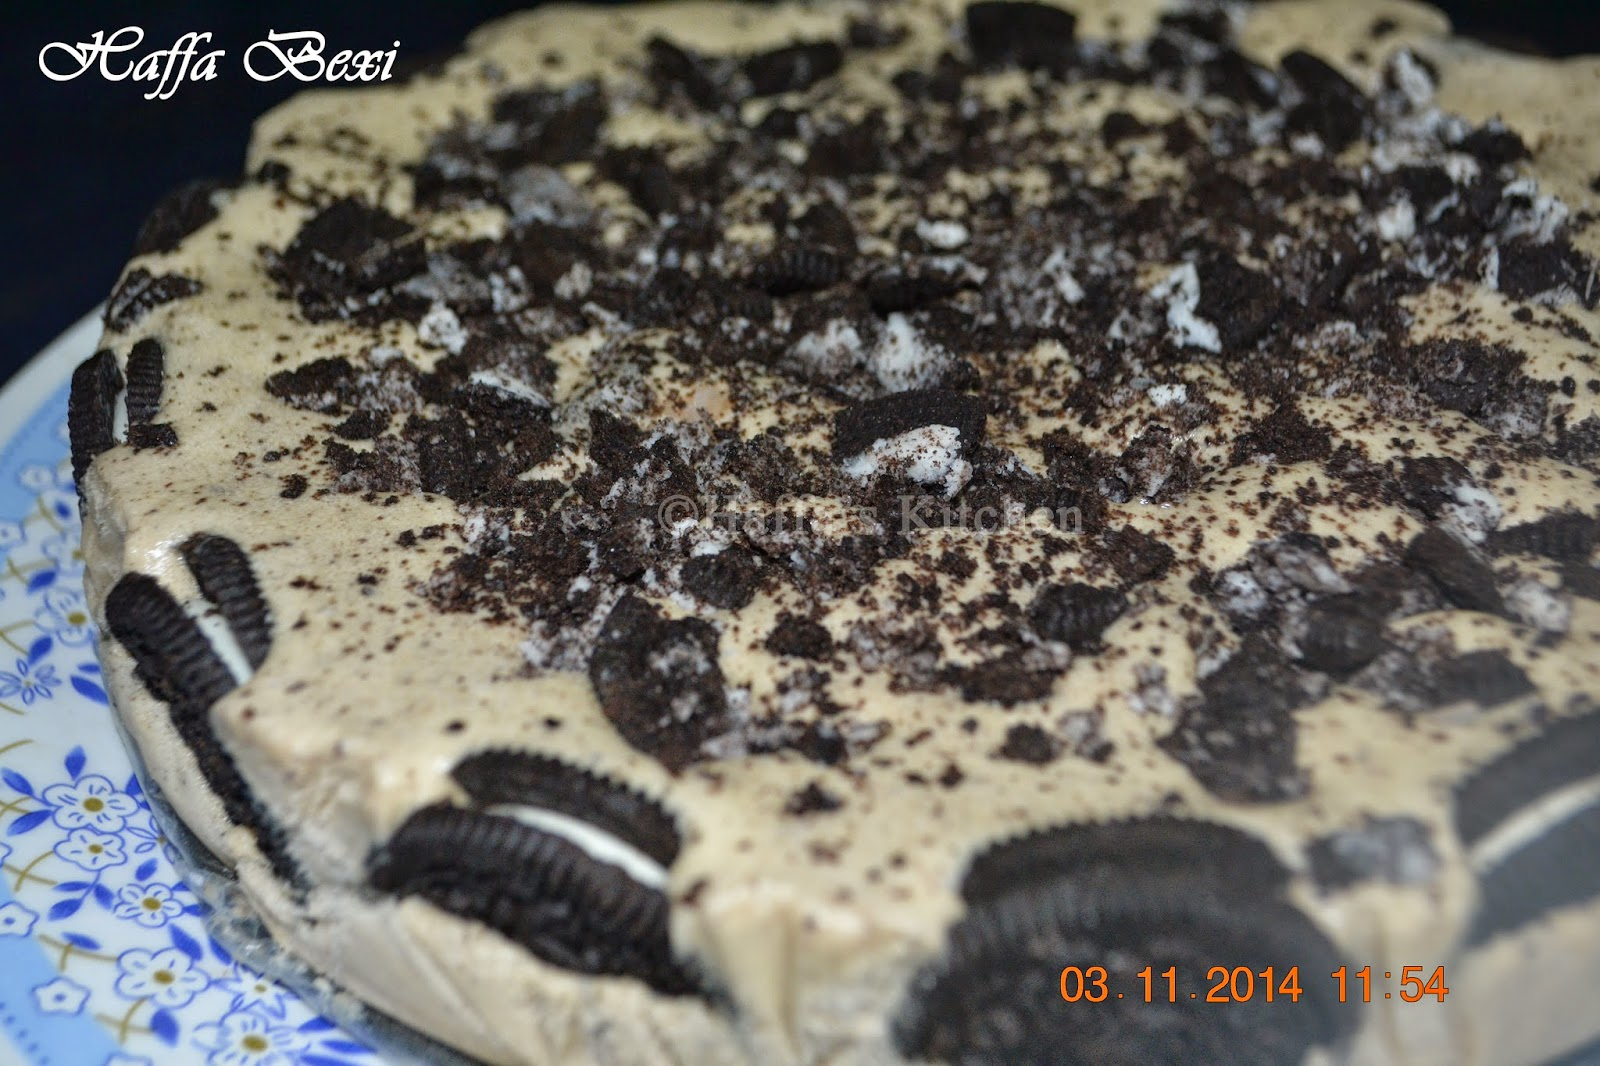 no bake recipes| easy oreo ice cream cake recipe| no bake oreo ice cream cake| how to make oreo ice cream cake| oreo ice cream cake|ice cream cake recipes| ice cream cake| oreo ice cream cake recipe|homemade oreo ice cream cake| oreo cookie ice cream cake|